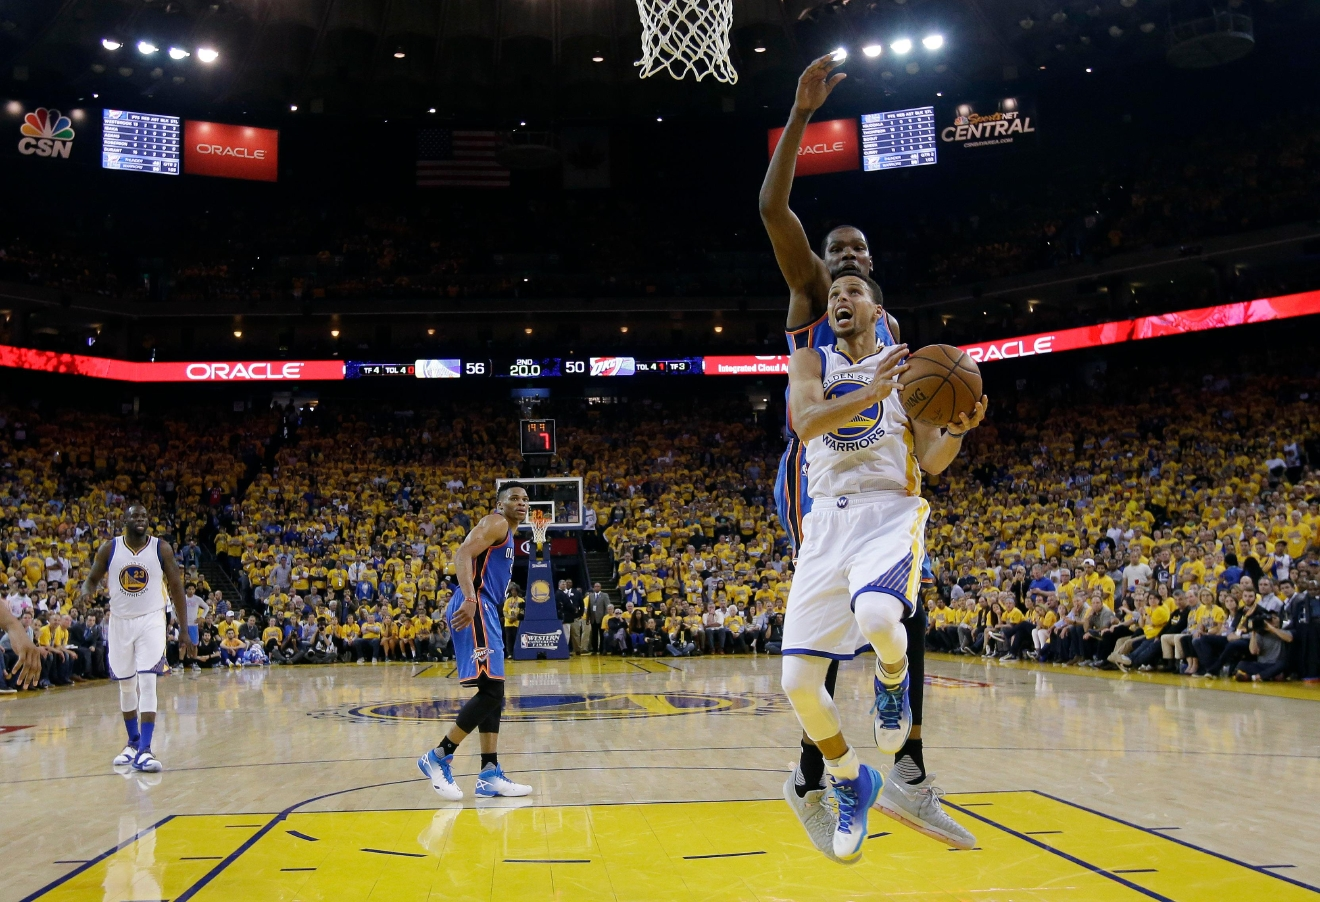 Golden State Warriors' Stephen Curry, right, drives past Oklahoma City Thunder's Kevin Durant, behind Curry, during the first half in Game 5 of the NBA basketball Western Conference finals Thursday, May 26, 2016, in Oakland, Calif. (AP Photo/Marcio Jose Sanchez)